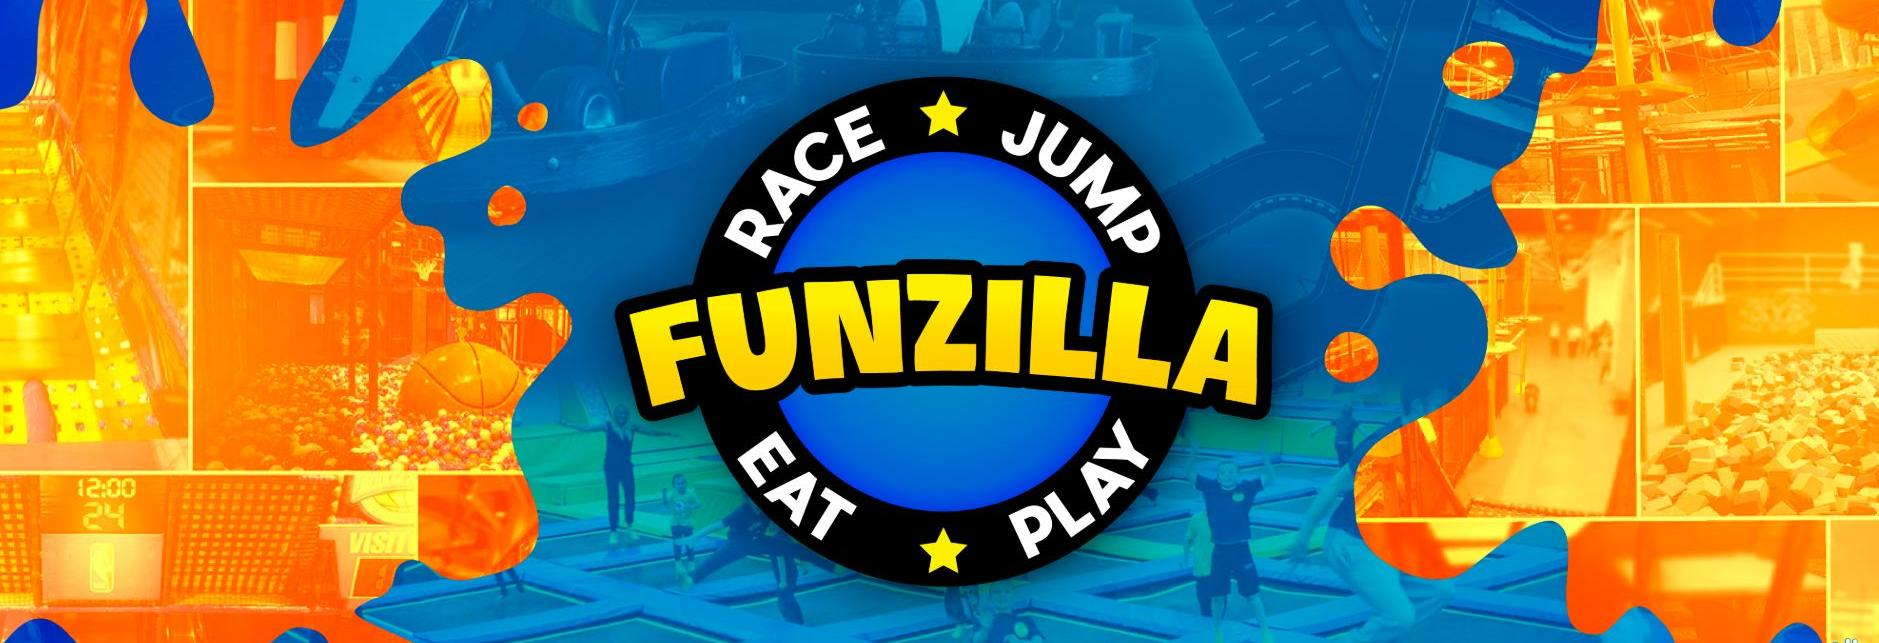 Indoor family adventure park, Fairless hills trampolines, Fairless Hills obstacle courses